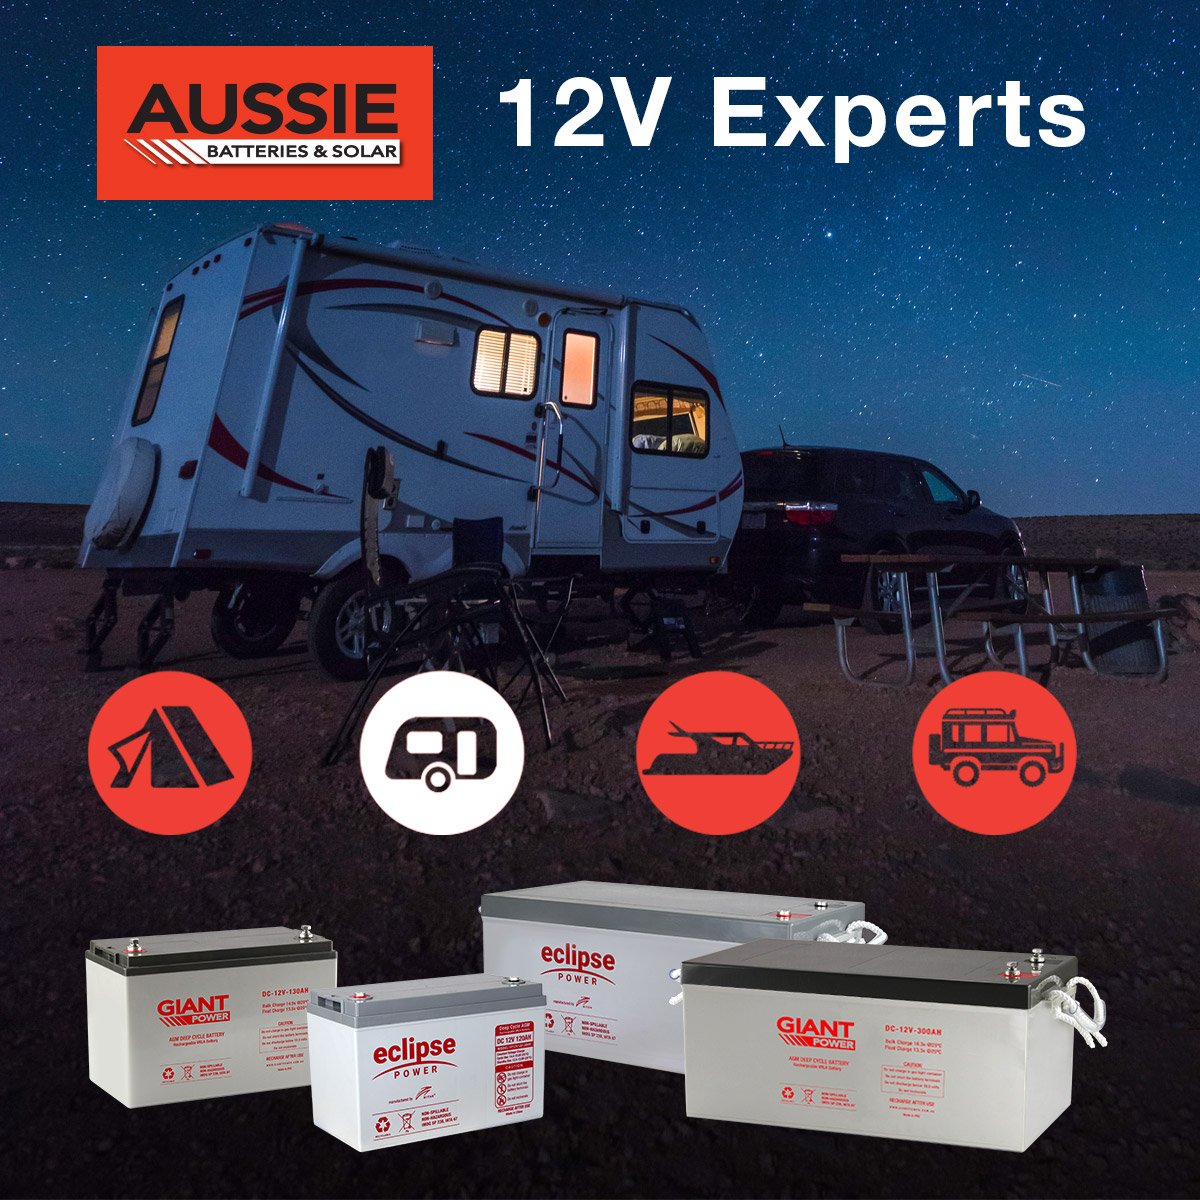 130AH Deep Cycle Battery for Camping